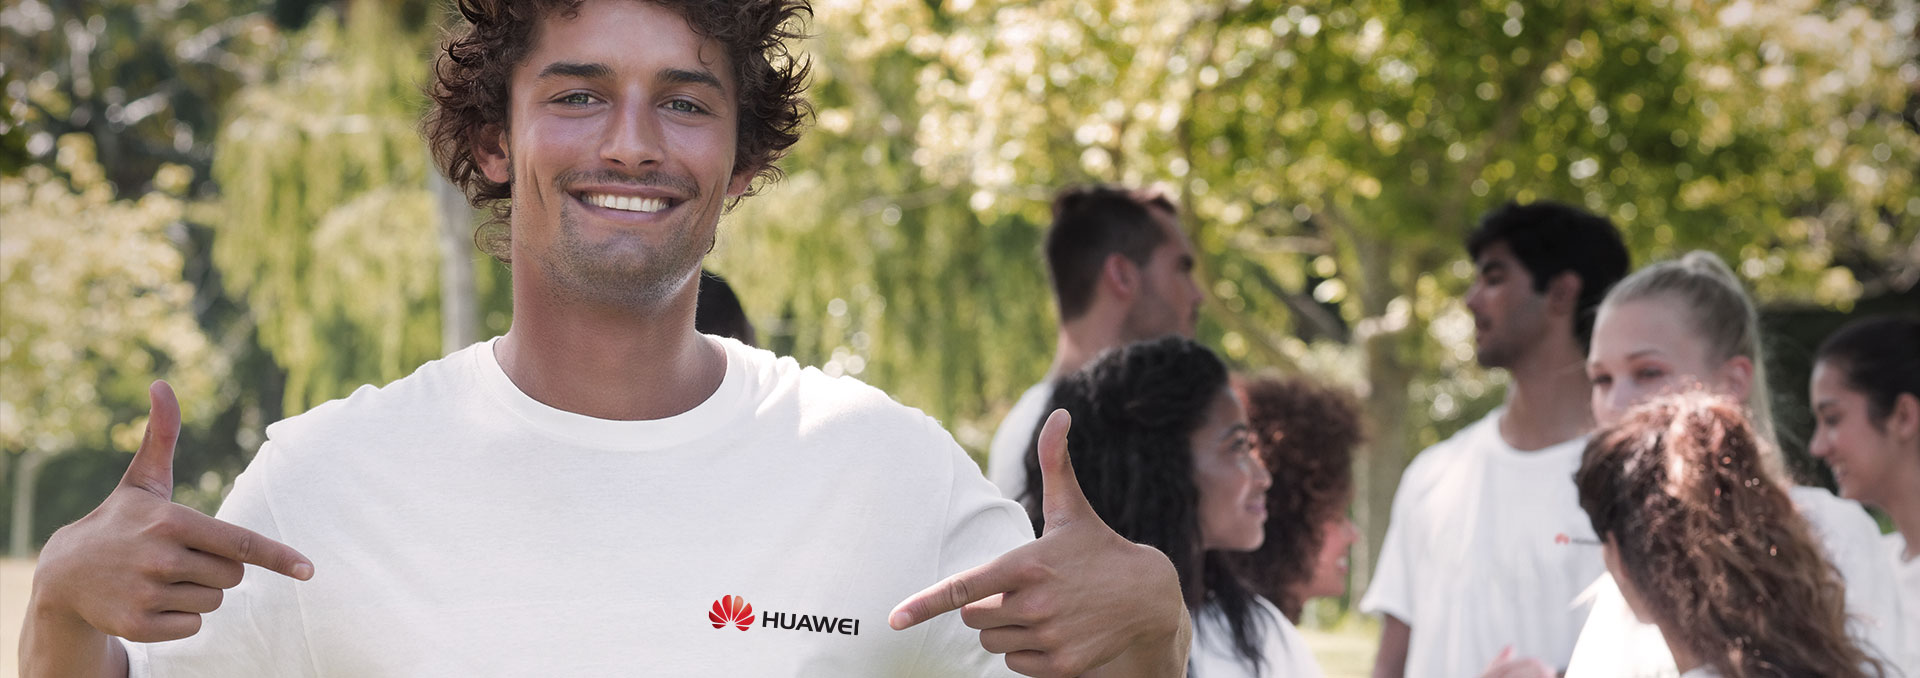 Huawei will always be with you to construct a green world! We will make it possible!